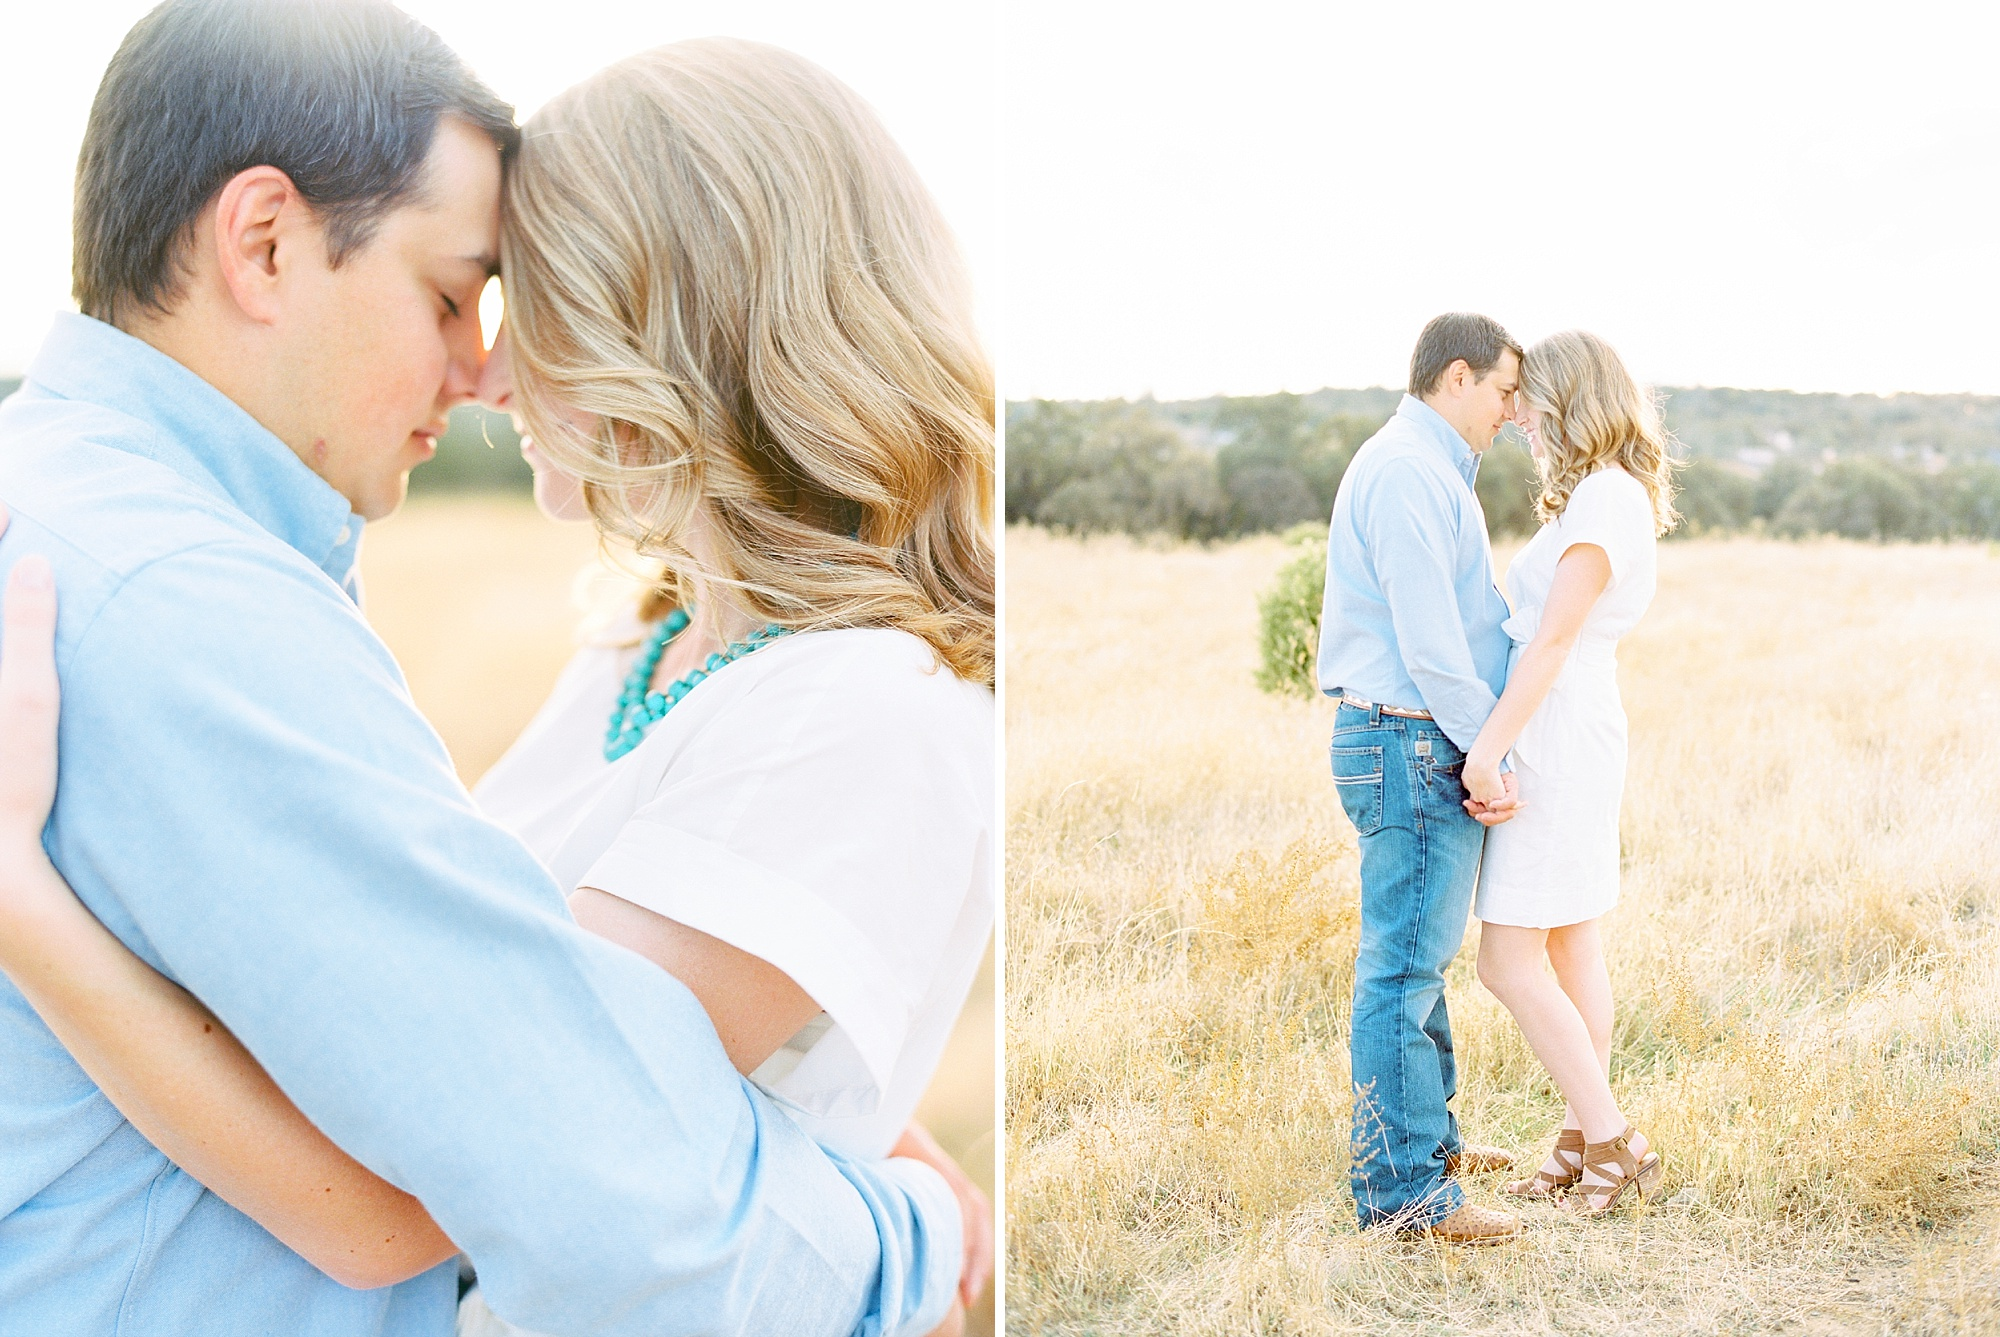 Golden Hills Engagement Session - Film Engagement Session - Ashley Baumgartner - Sacramento Wedding Photography - Stone Barn Ranch Wedding Couple_0016.jpg